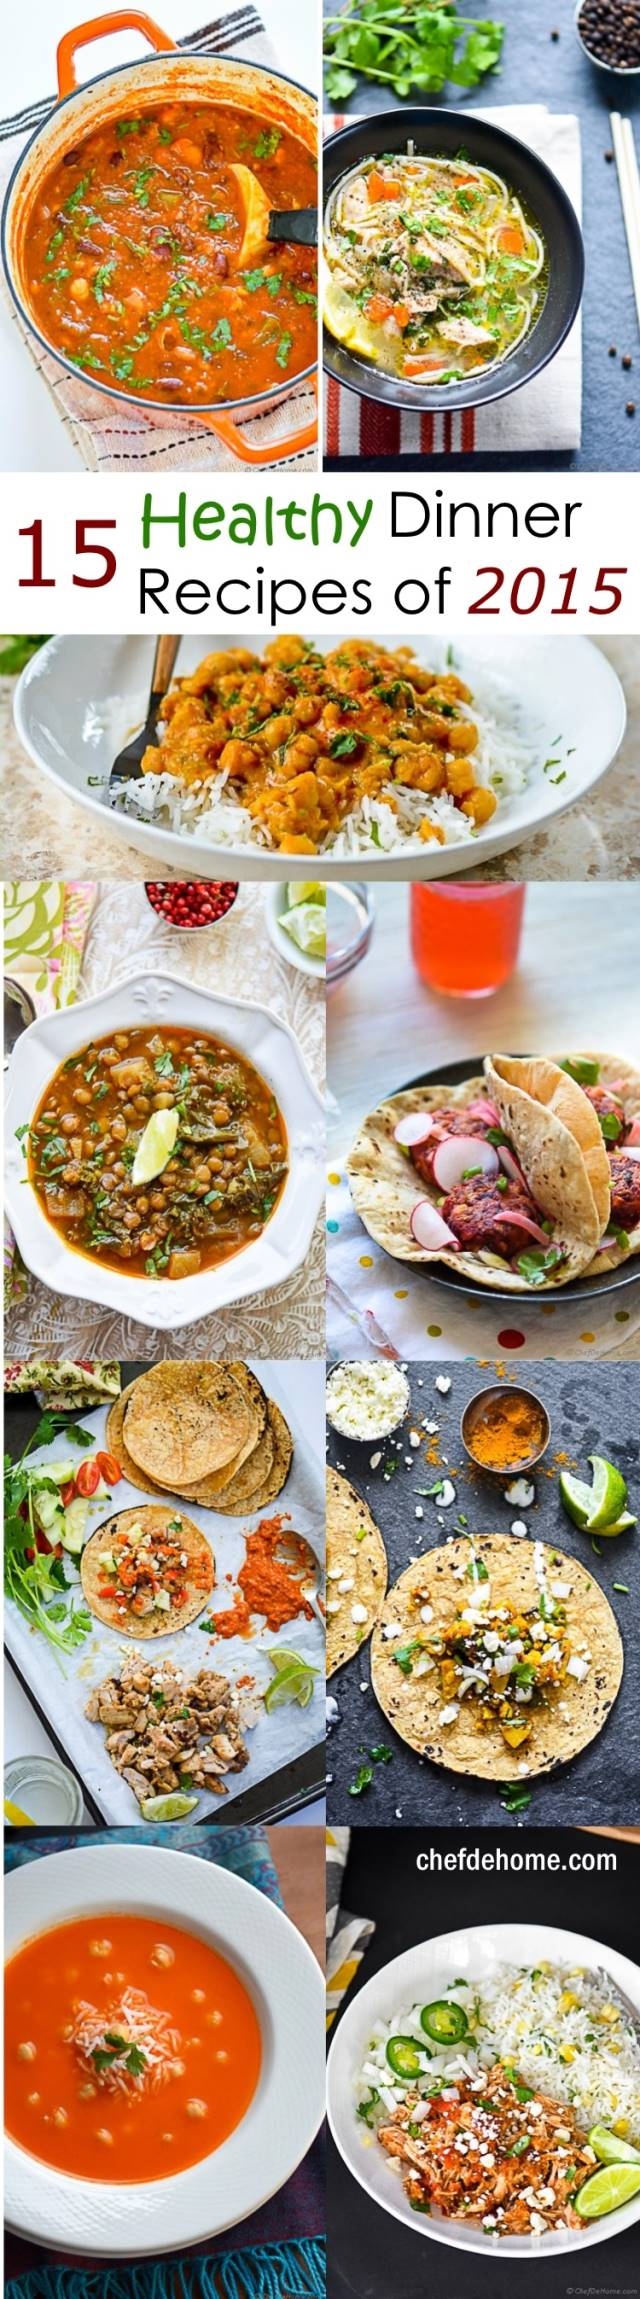 15 Top Healthy Dinner Recipes for New Year